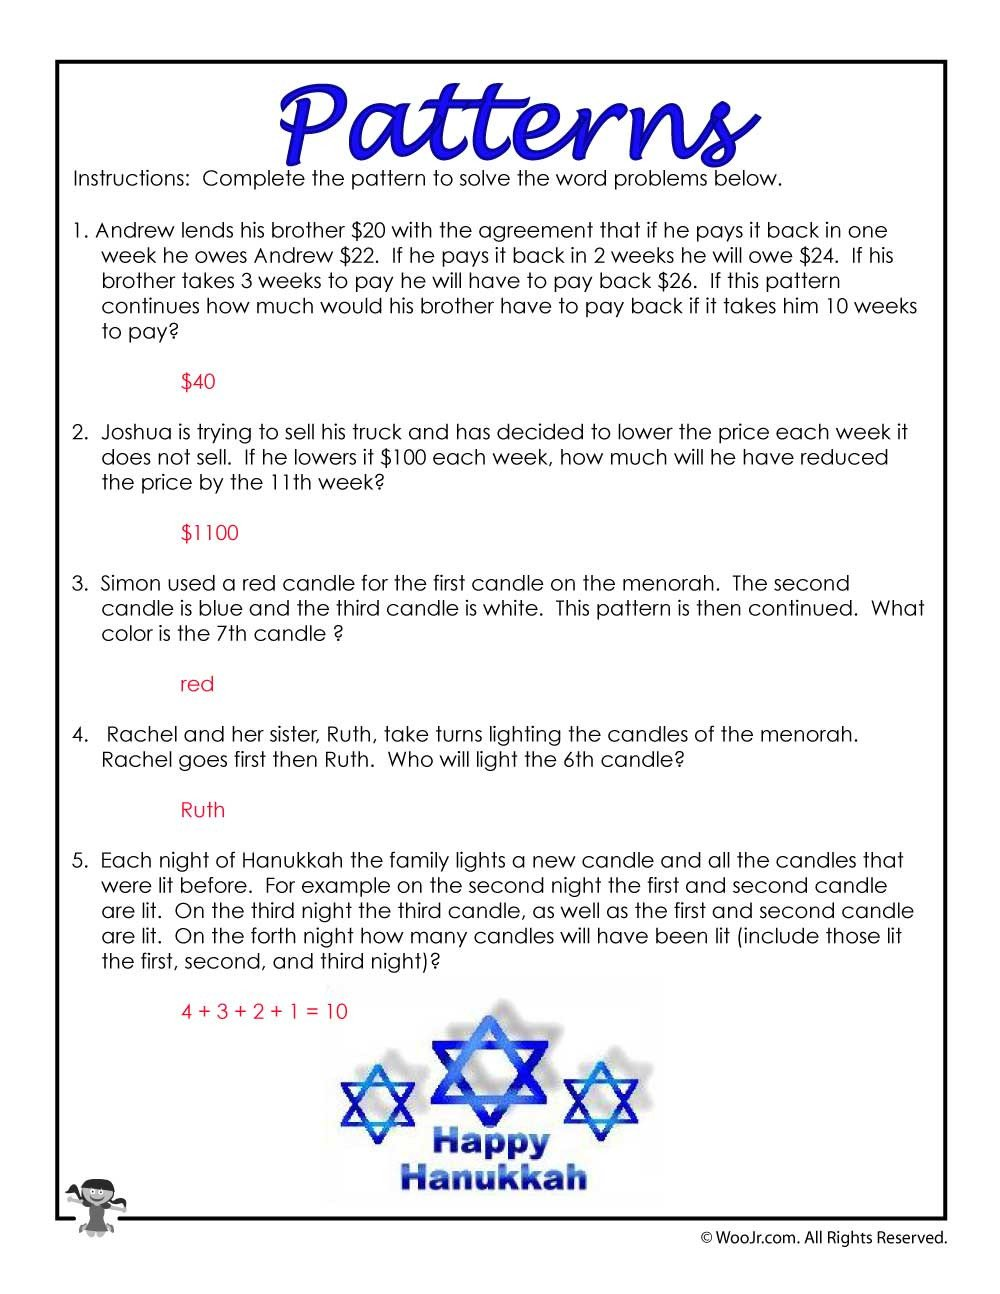 Numerical Patterns Worksheets 3rd Grade Math Patterns Word Problems Answer Key